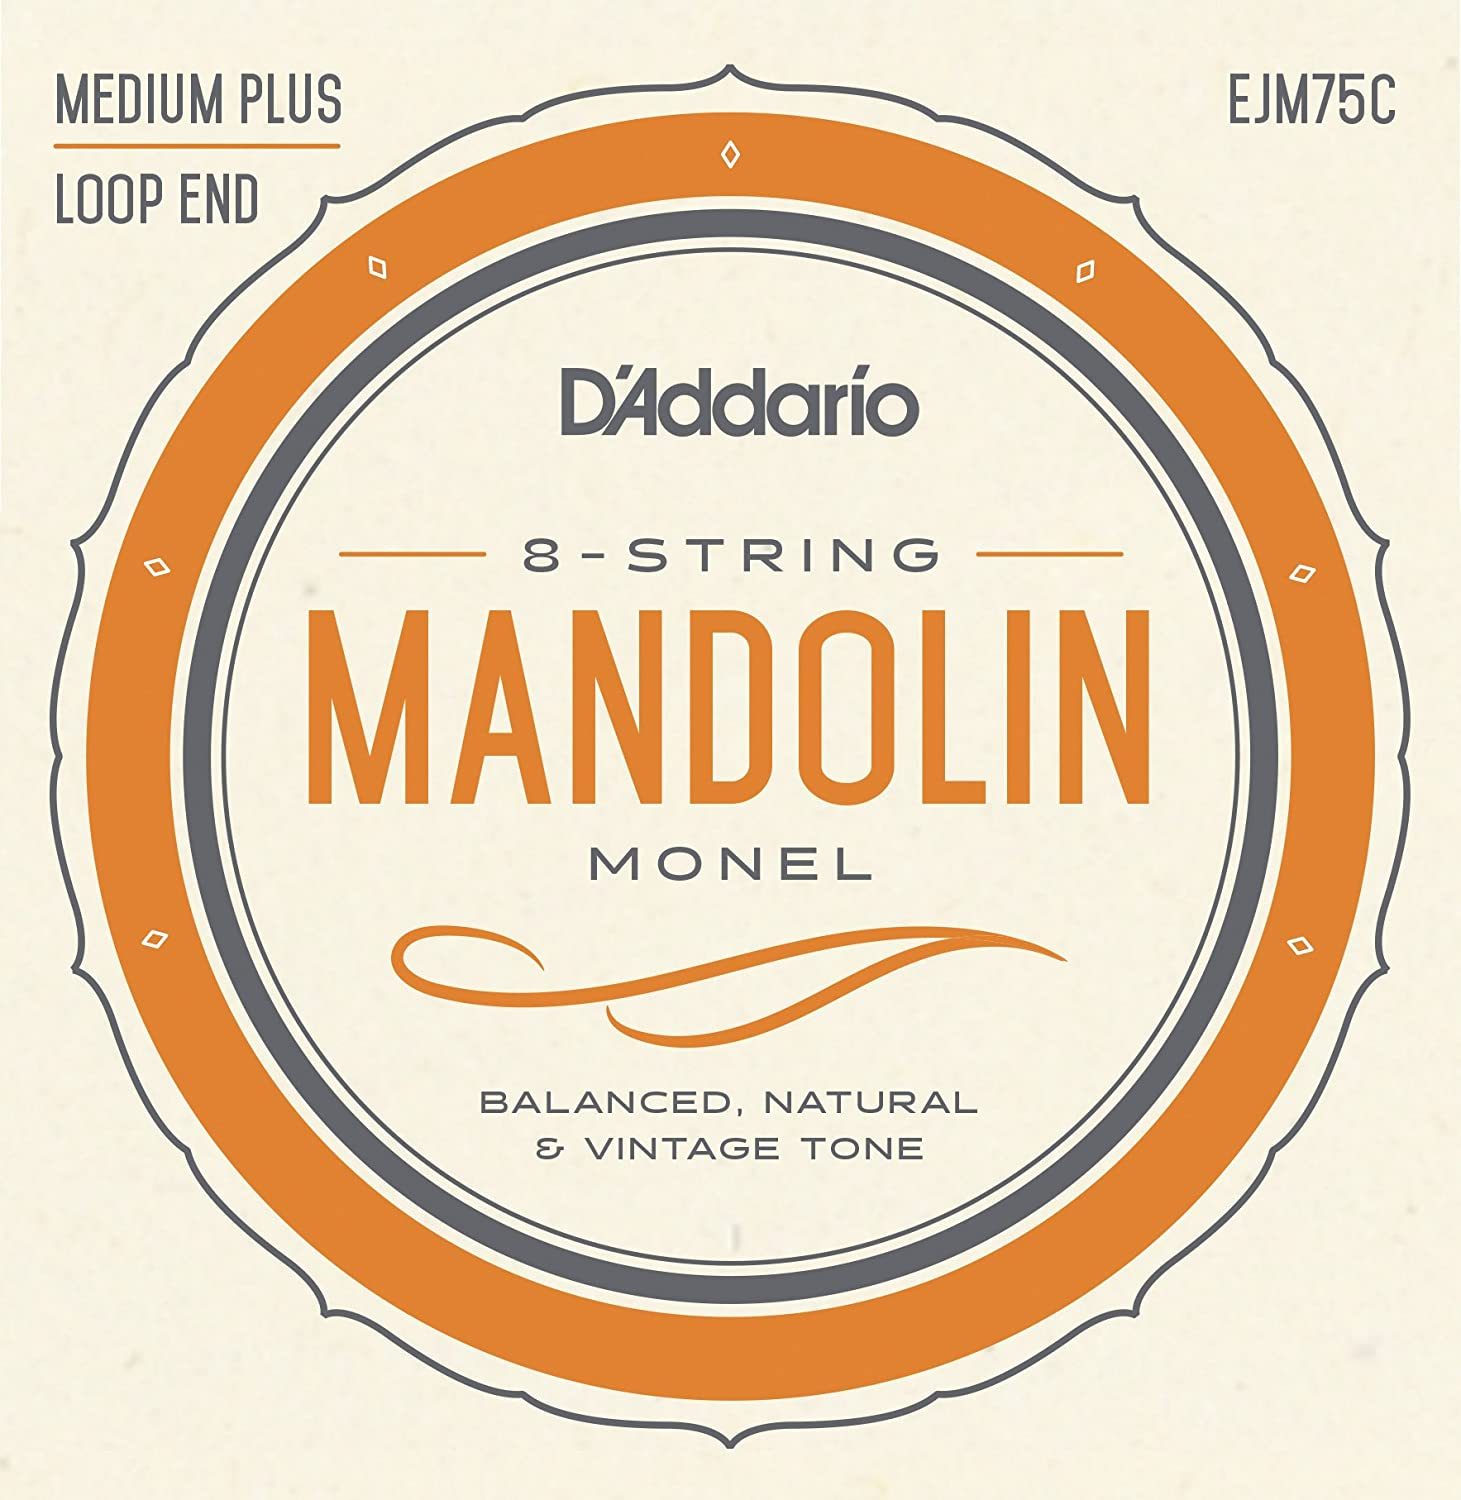 D'Addario Mandolin Monel Set, Medium Plus, 11-41 (EJM75C) D'Addario &Co. Inc